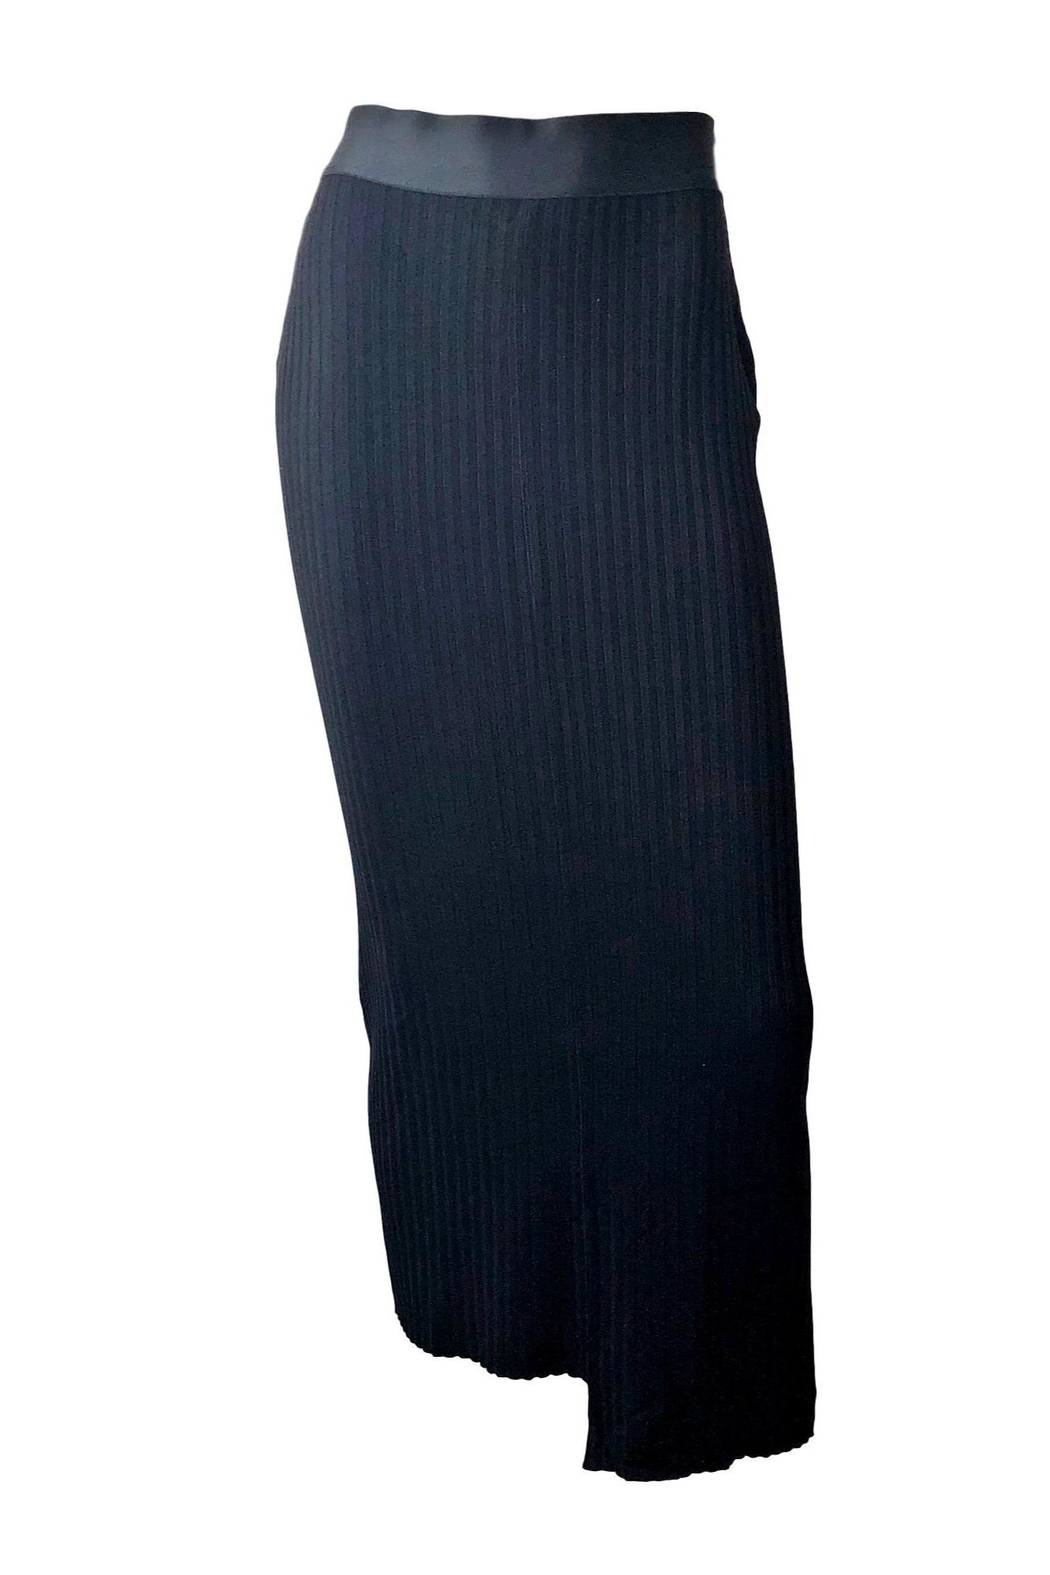 THE RANGE NYC Framed Rib Skirt - Front Cropped Image